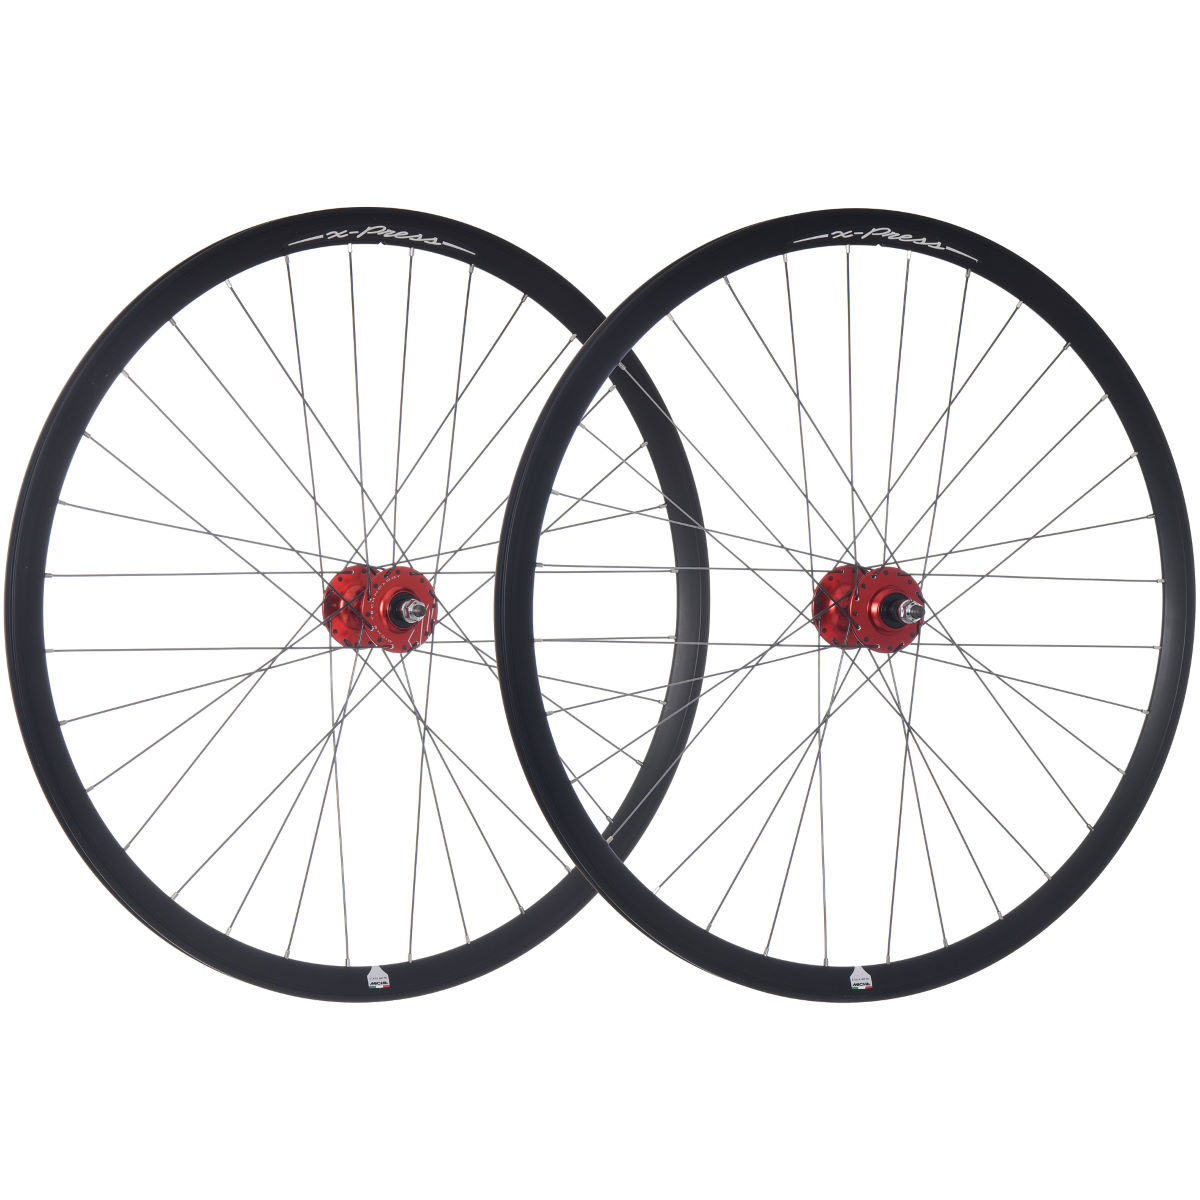 Roues de piste/route Miche X-Press - 700c - Track Only Rouge